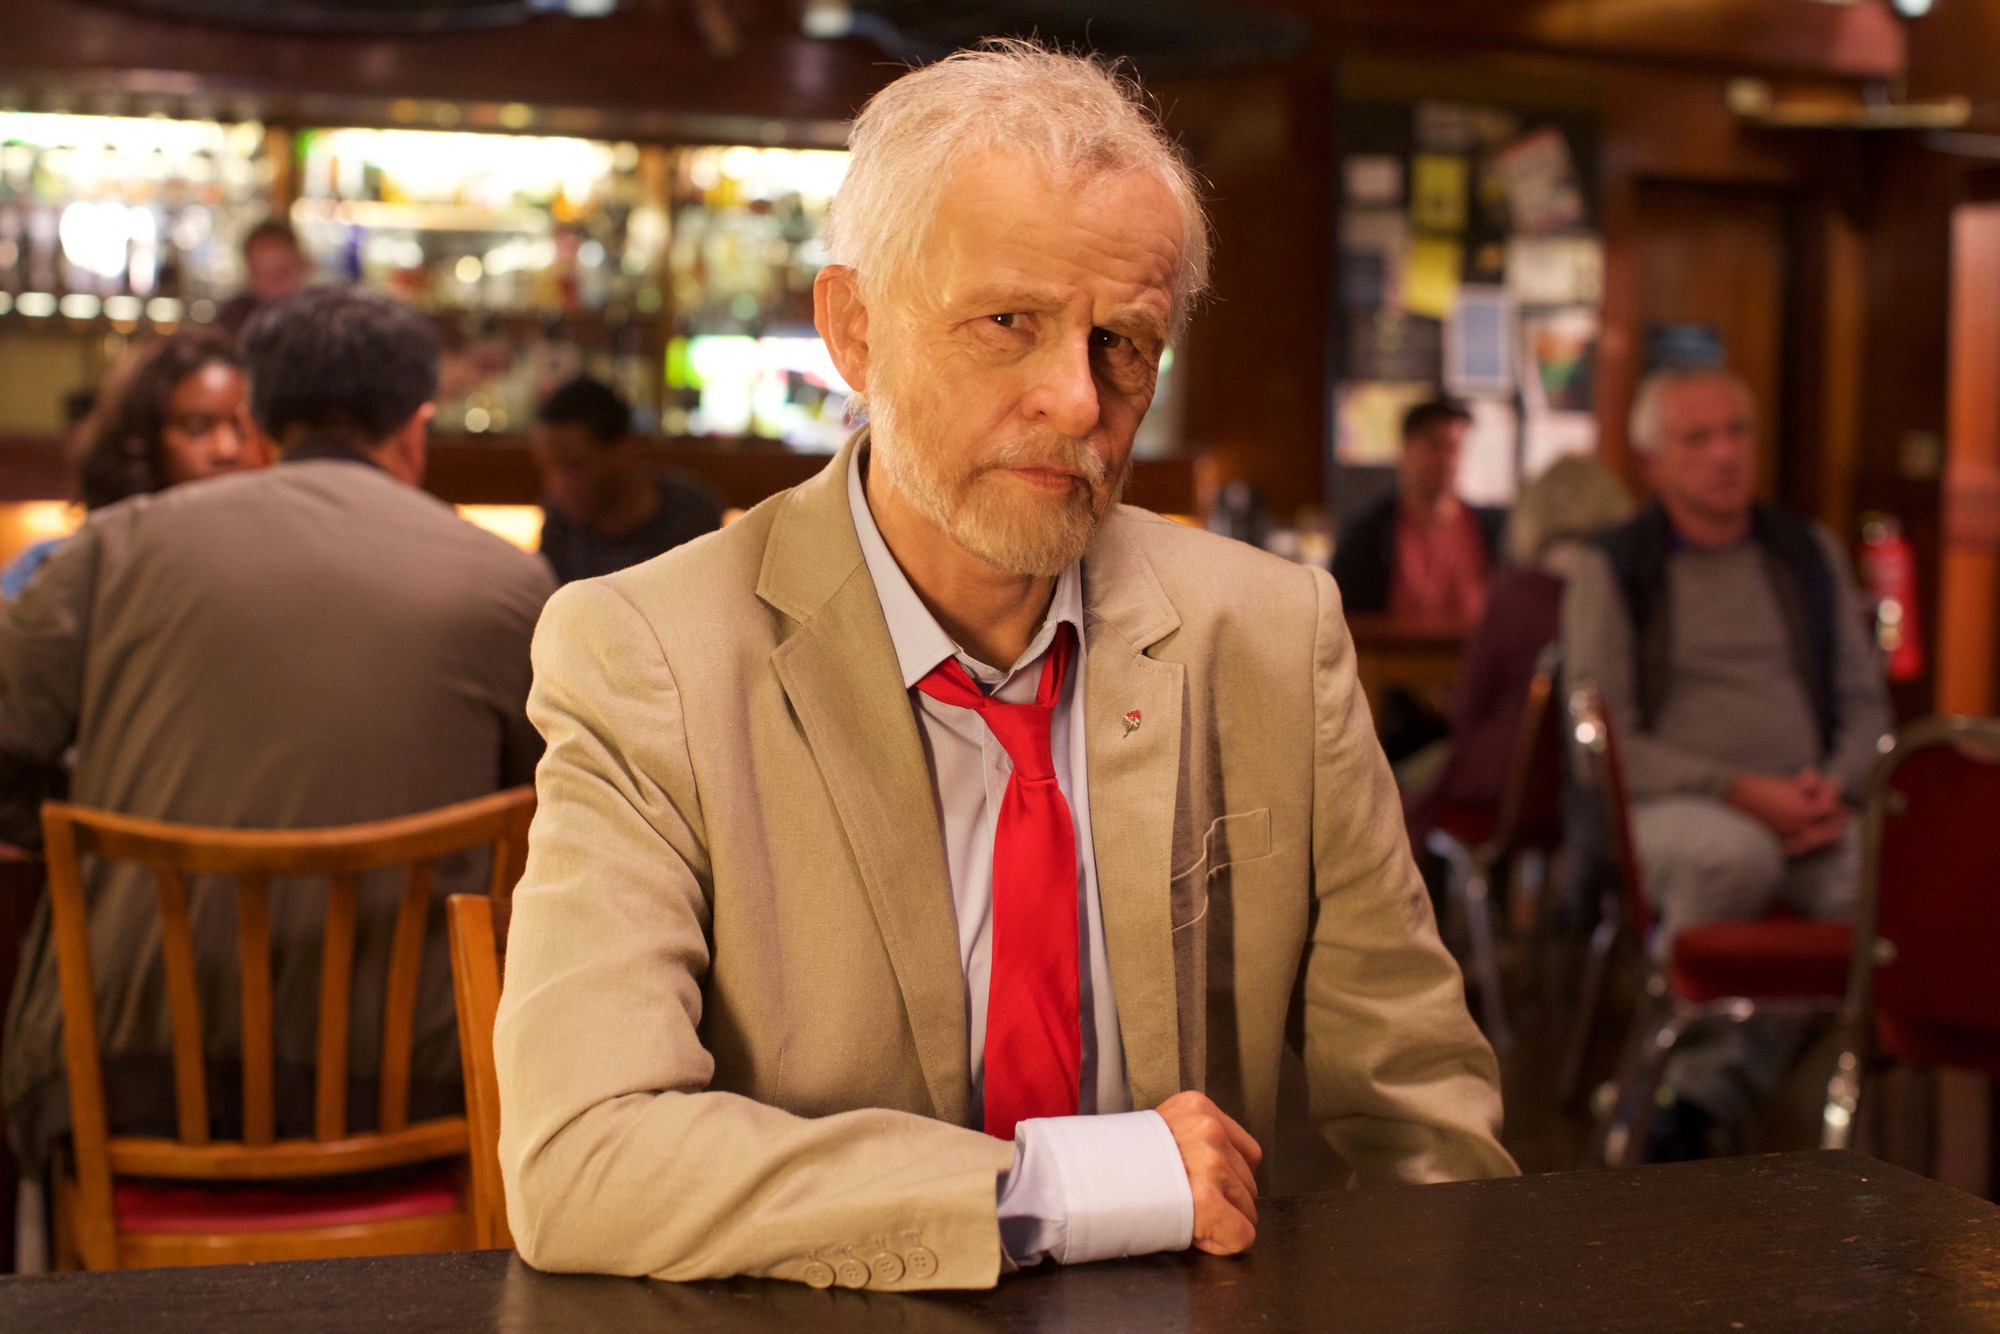 Tracey Ullman as Jeremy Corbyn